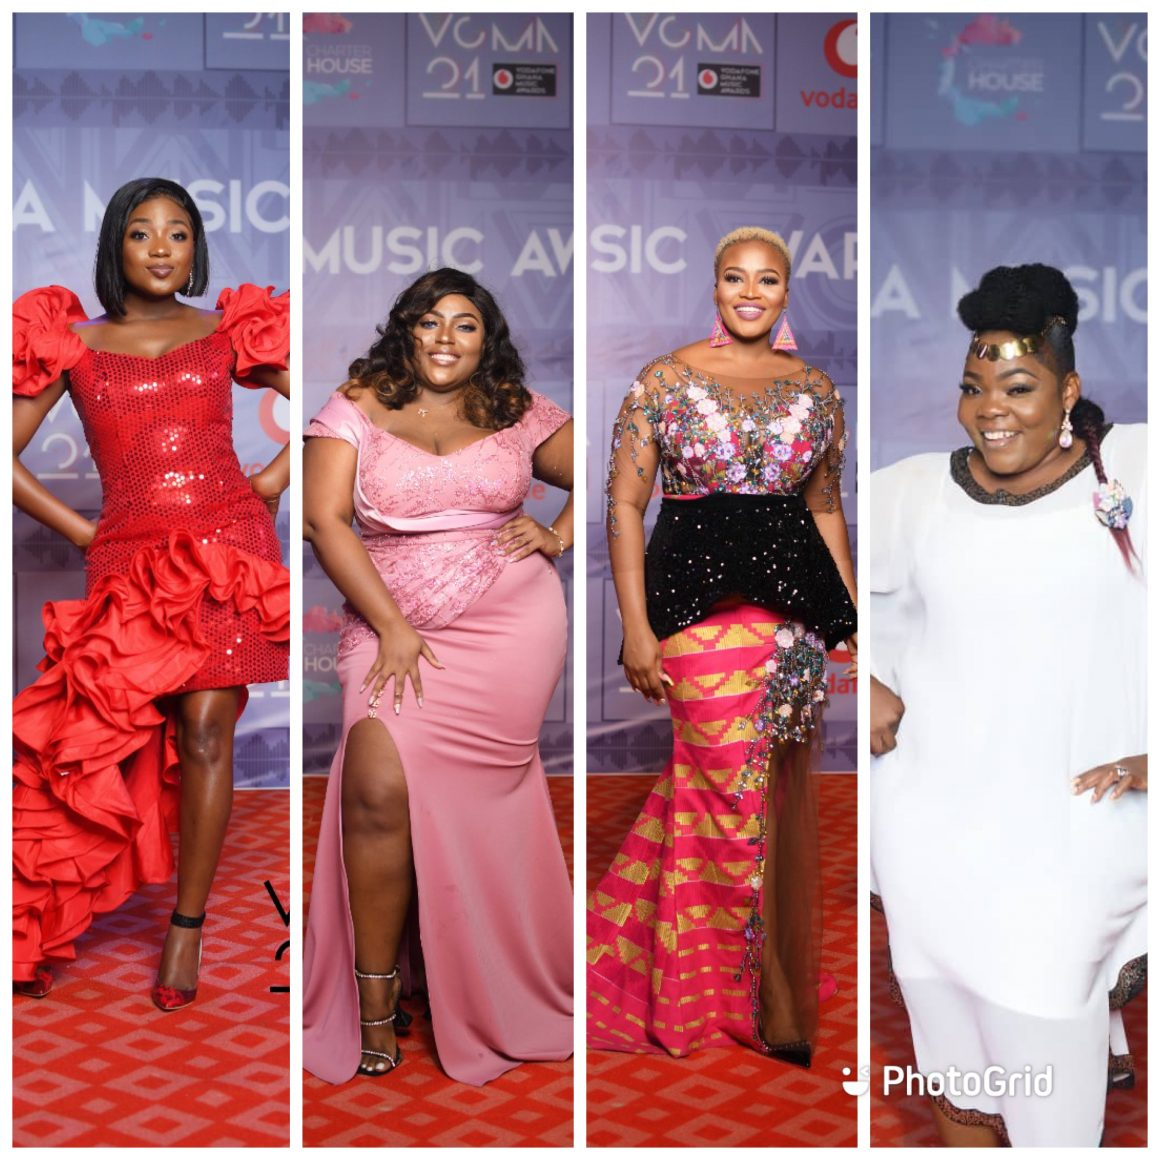 did-the-ladies-come-to-slay?-catch-all-the-red-carpet-looks-from-tonight's-#vgma21